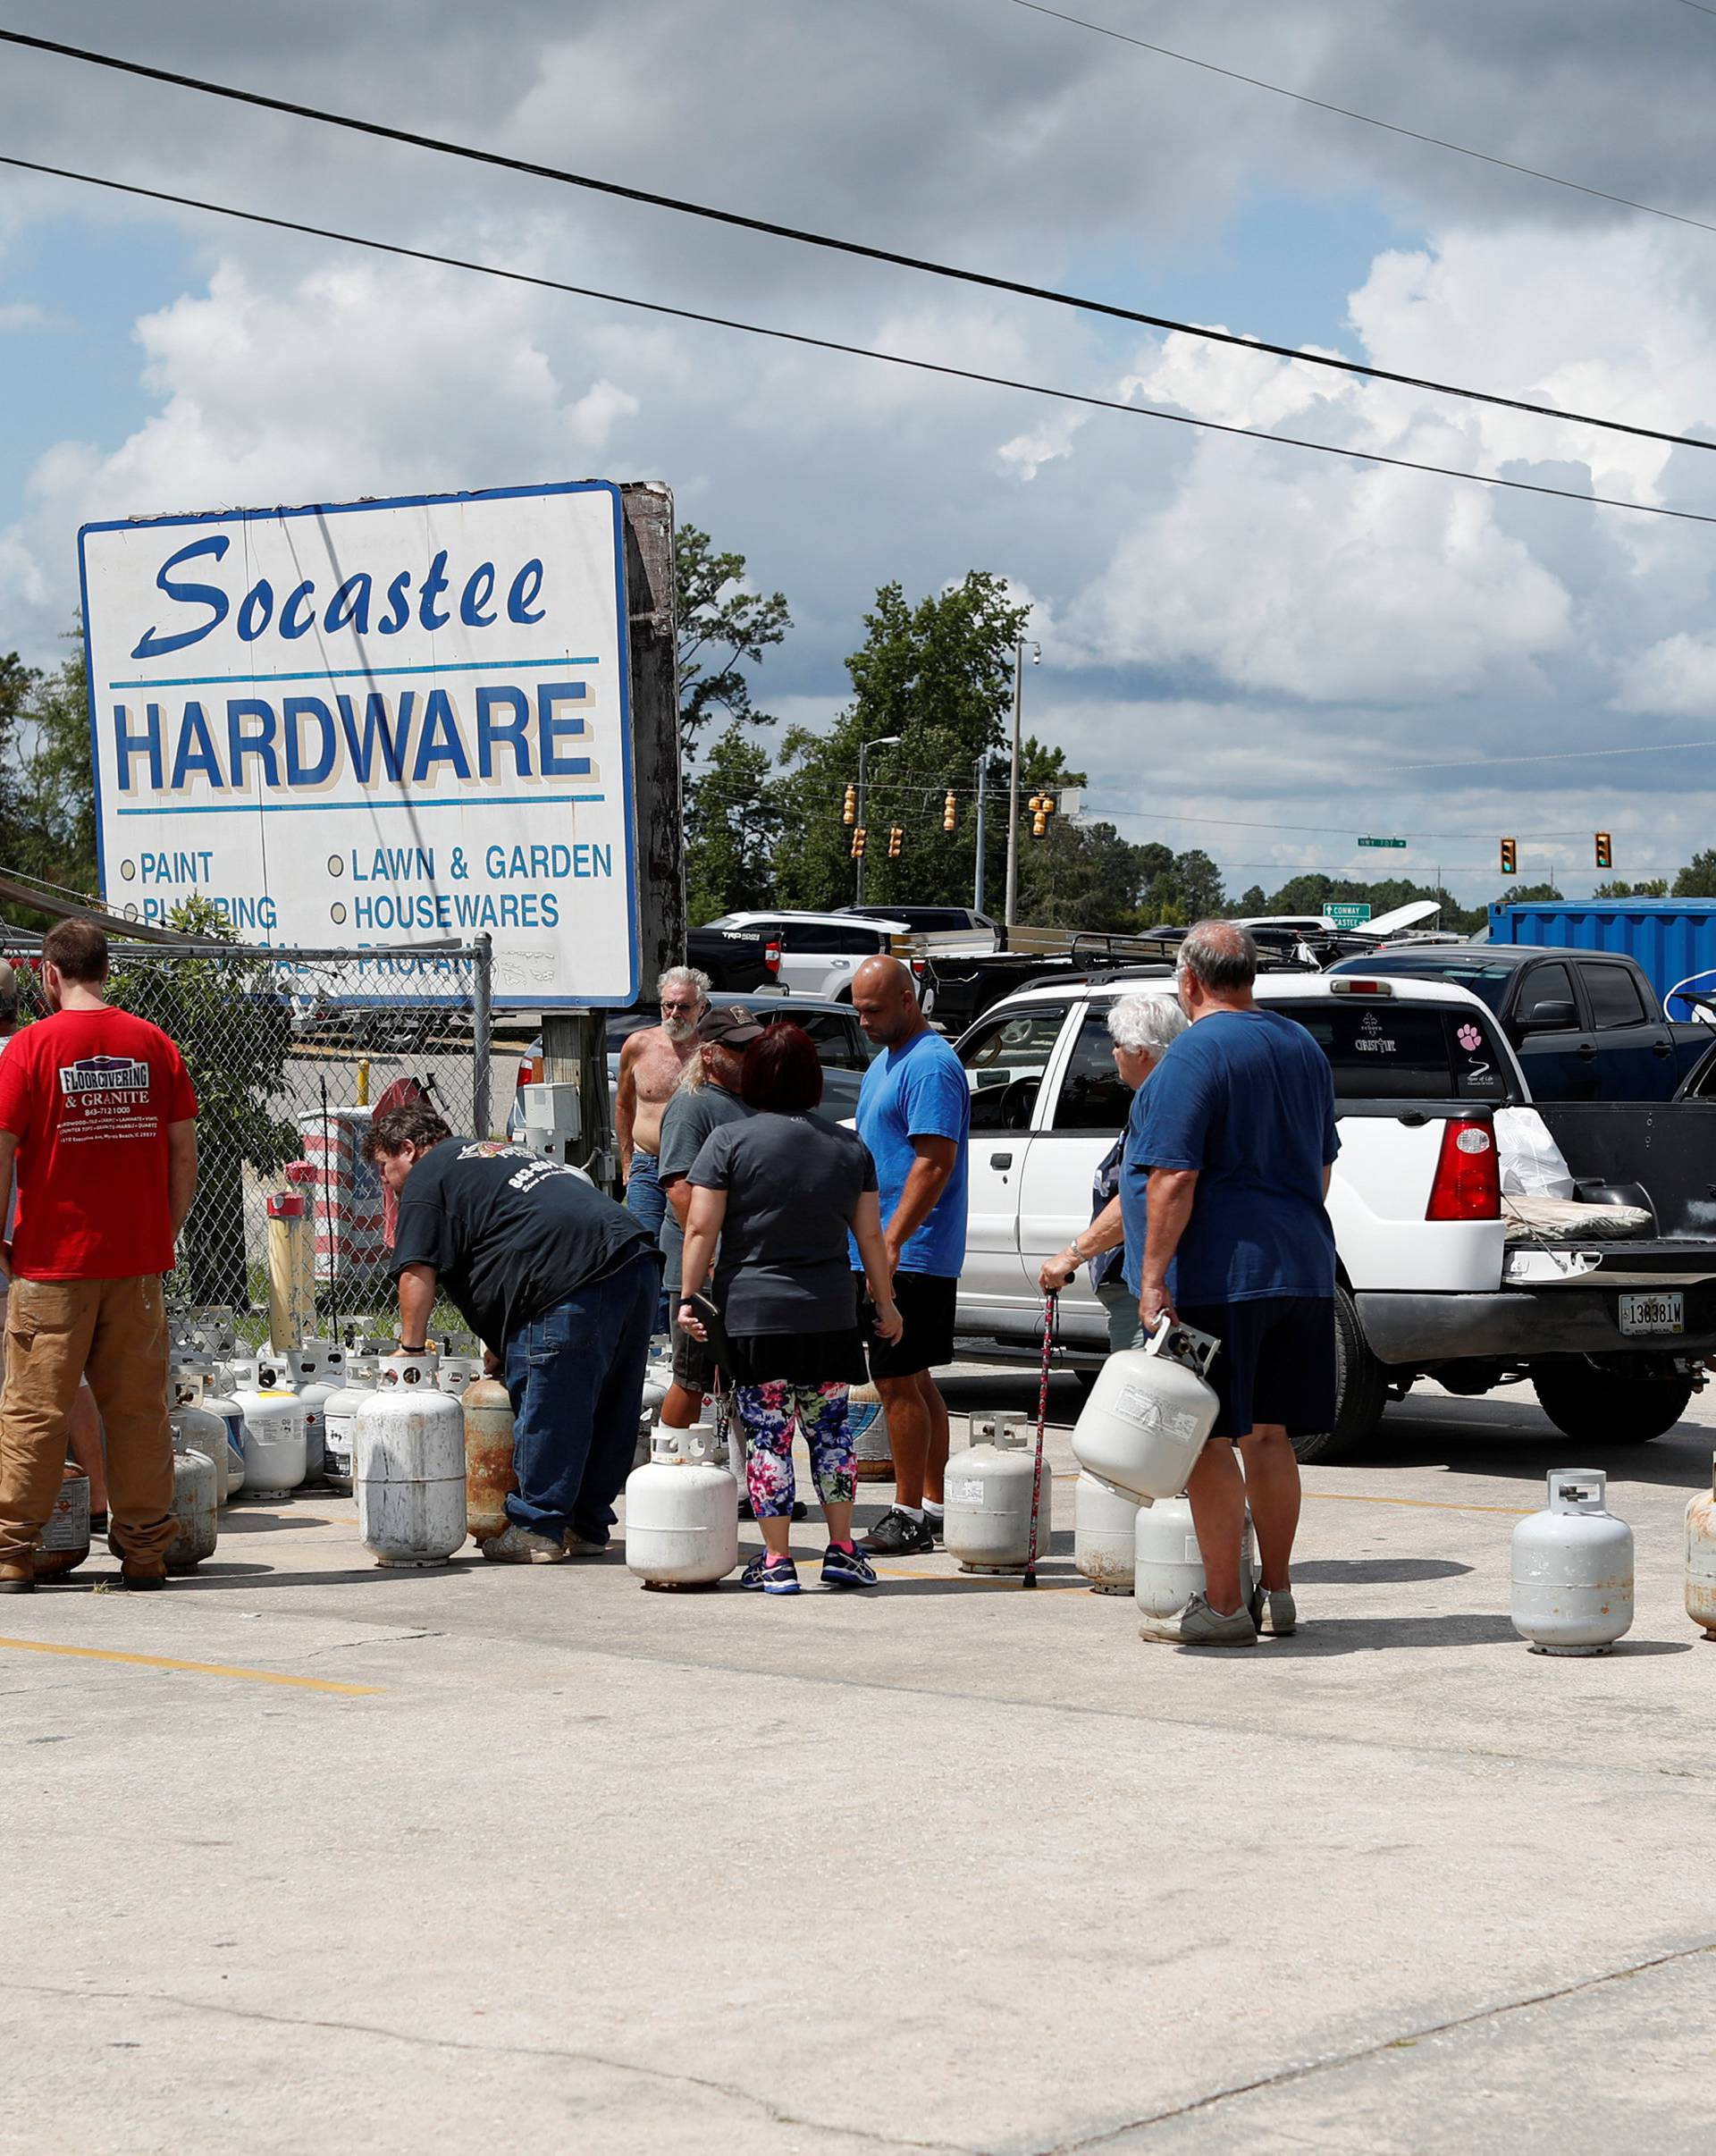 Customers line up to buy propane at Socastee Hardware store, ahead of the arrival of Hurricane Florence in Myrtle Beach